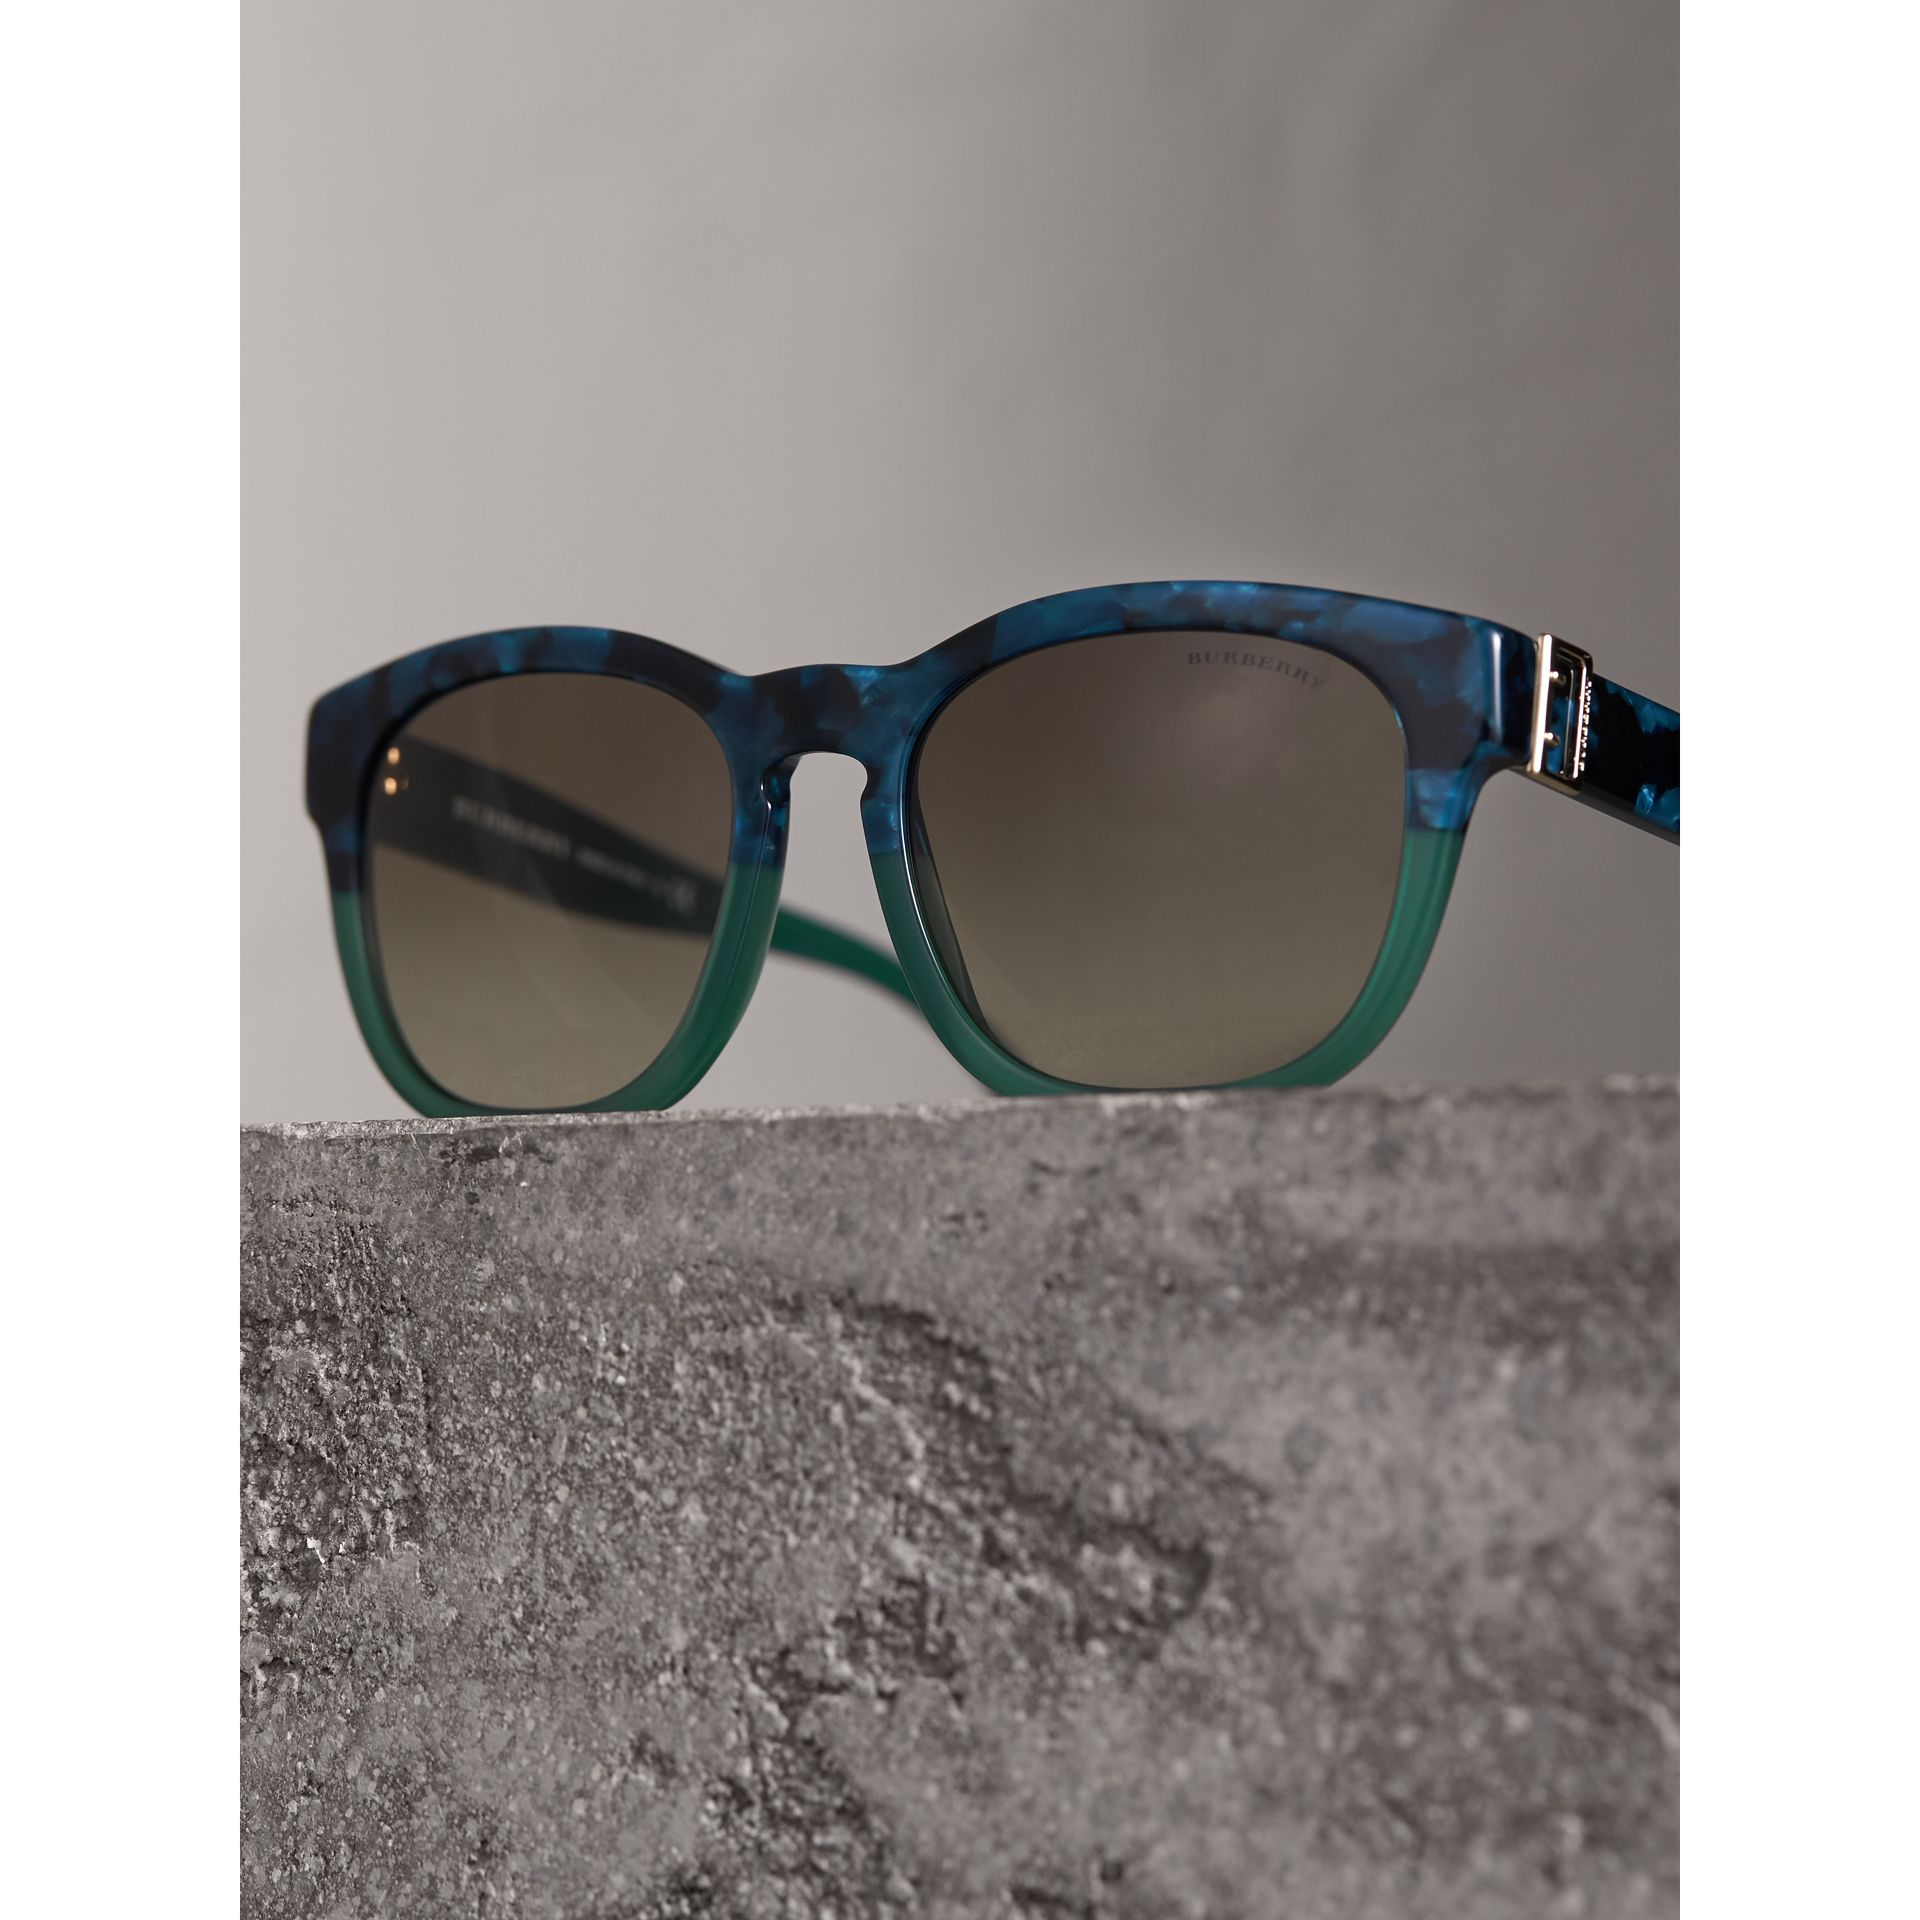 Buckle Detail Square Frame Sunglasses in Blue - Women | Burberry - gallery image 2